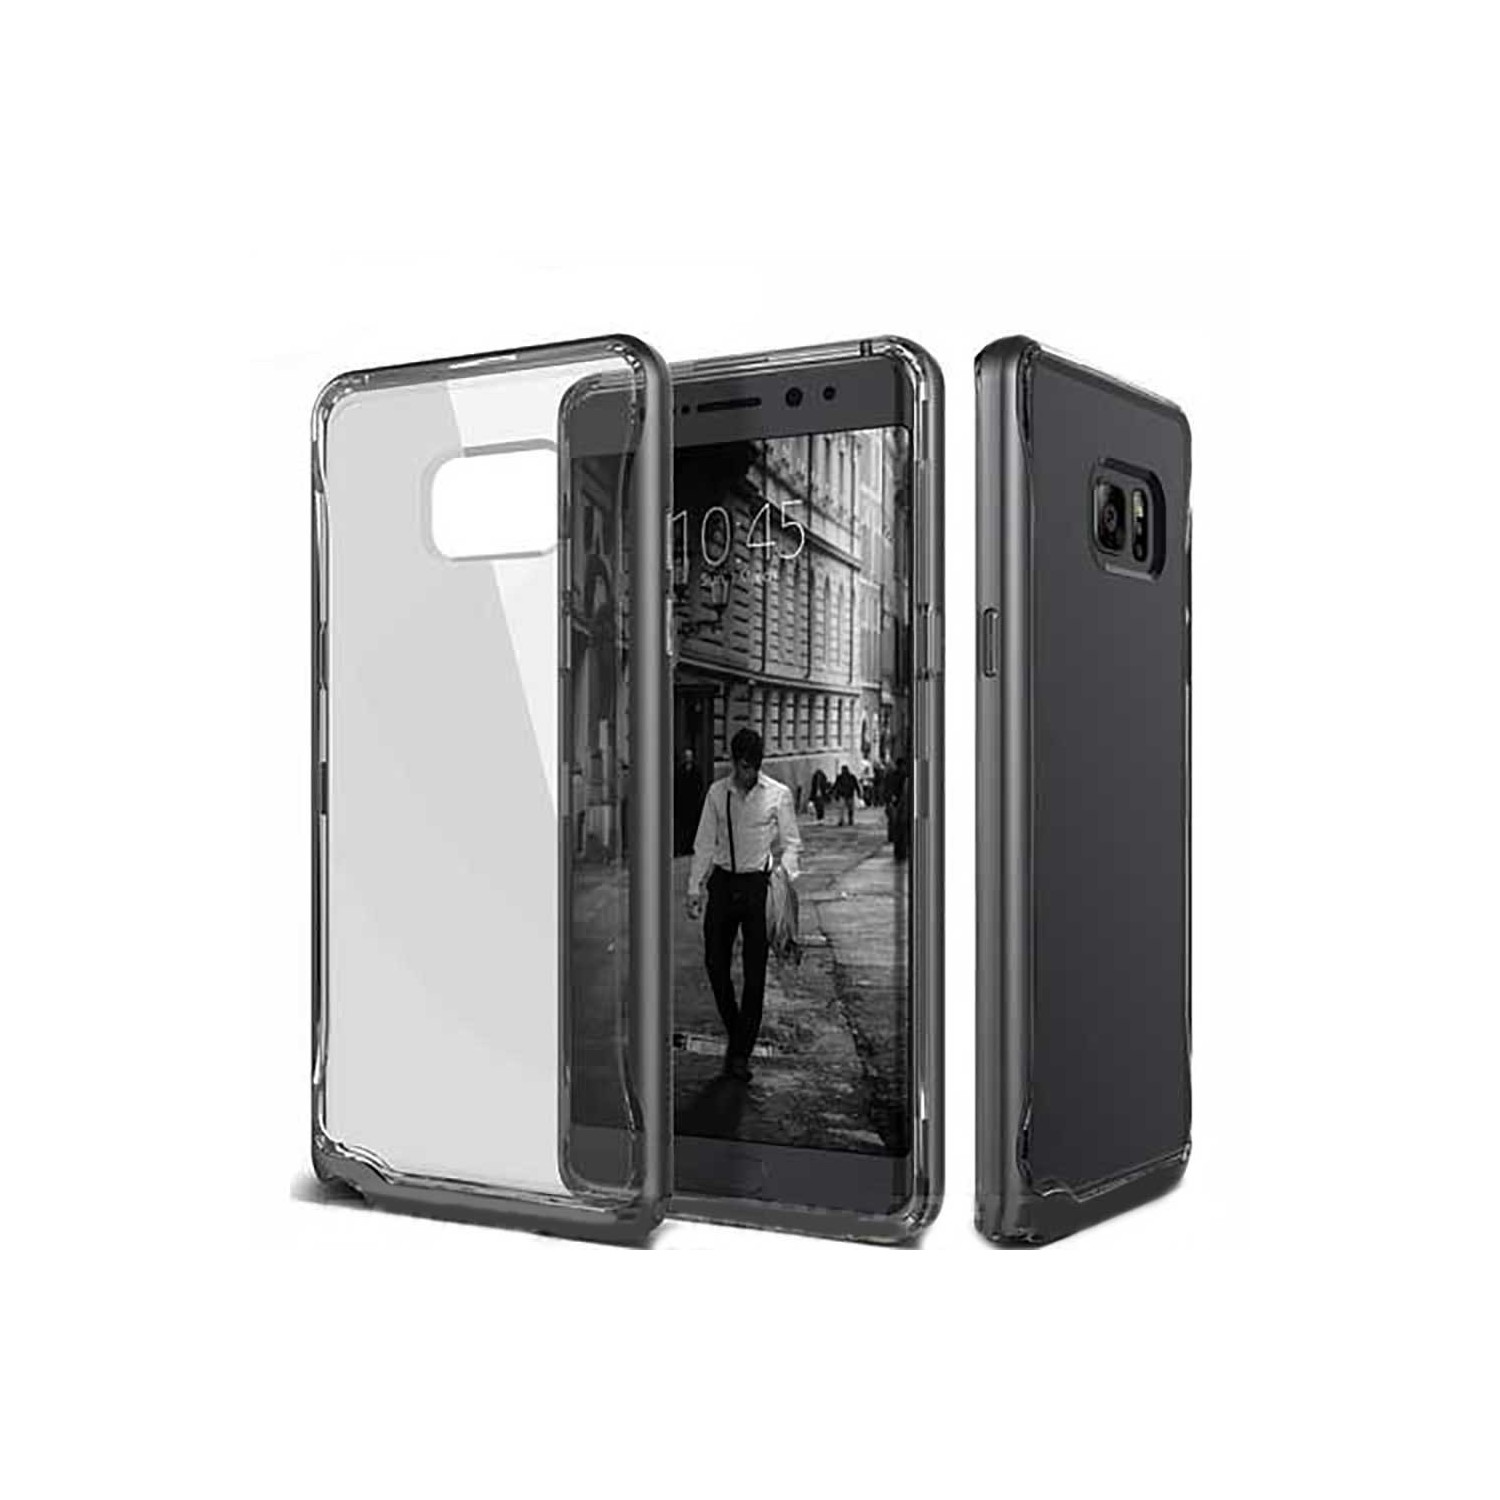 Case - CASEOLOGY Samsung Note 7 - Skyfall - Clear Black